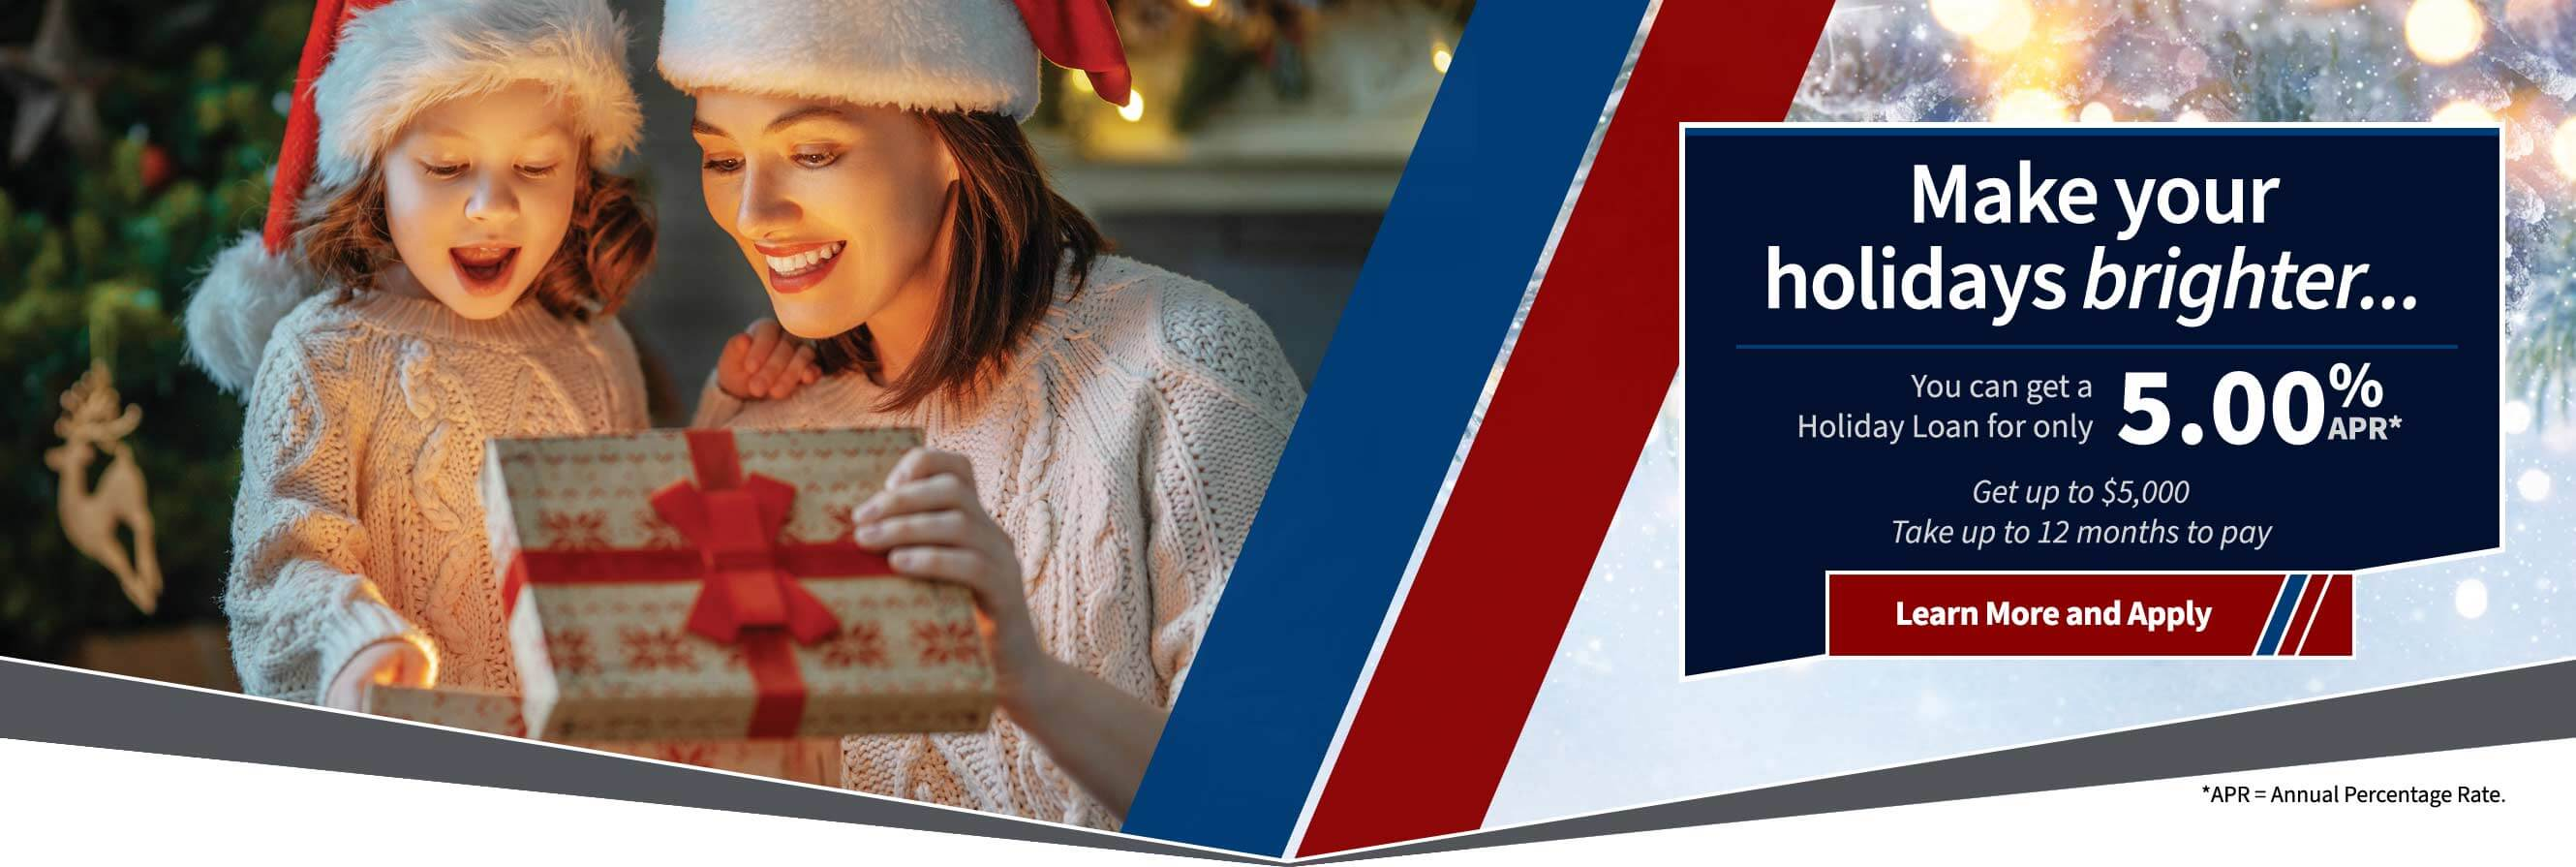 Make your holidays brighter with a 5.00% apr holiday loan